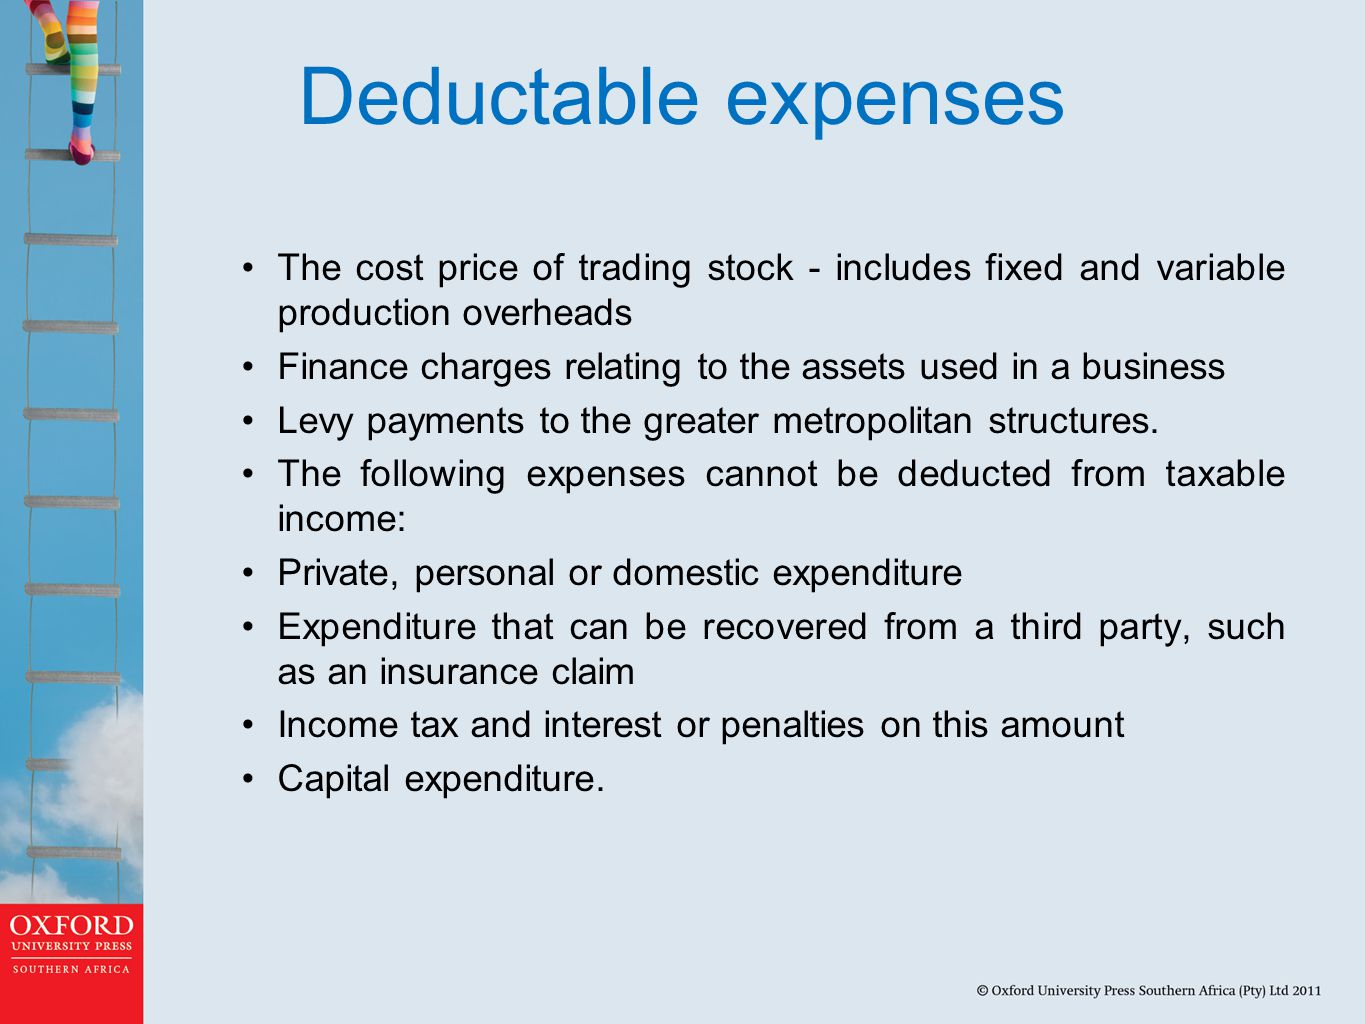 Deductable expenses The cost price of trading stock - includes fixed and variable production overheads.